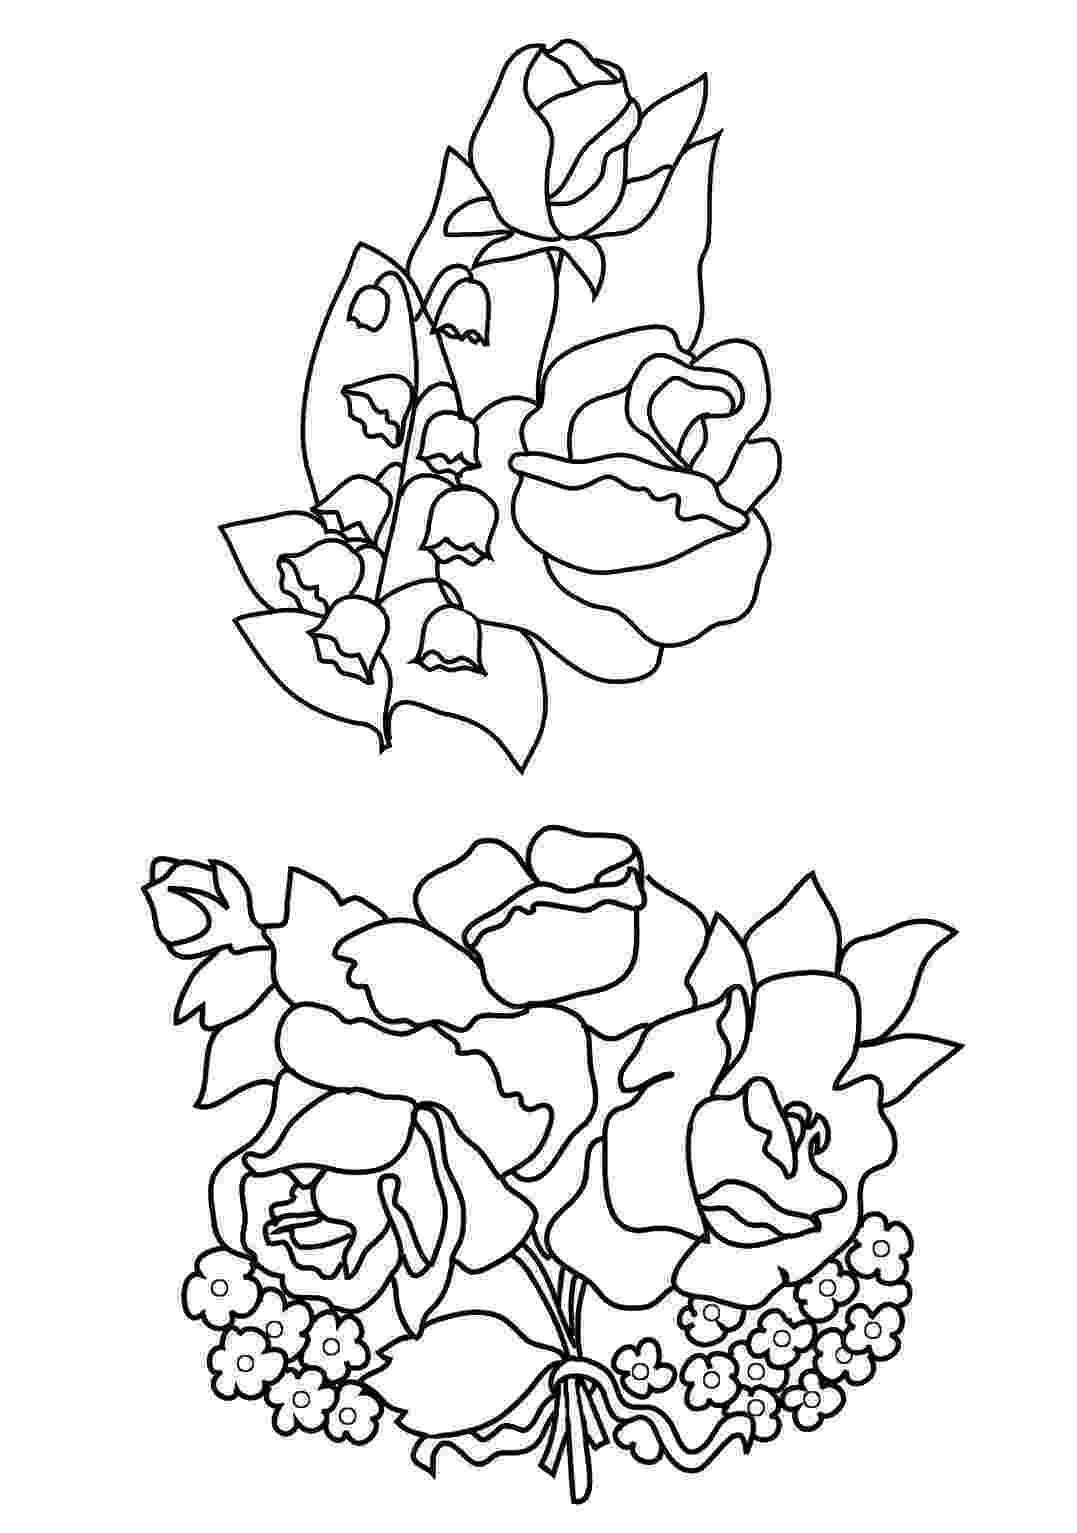 flower colouring pages free printable flower coloring pages for kids cool2bkids pages colouring flower